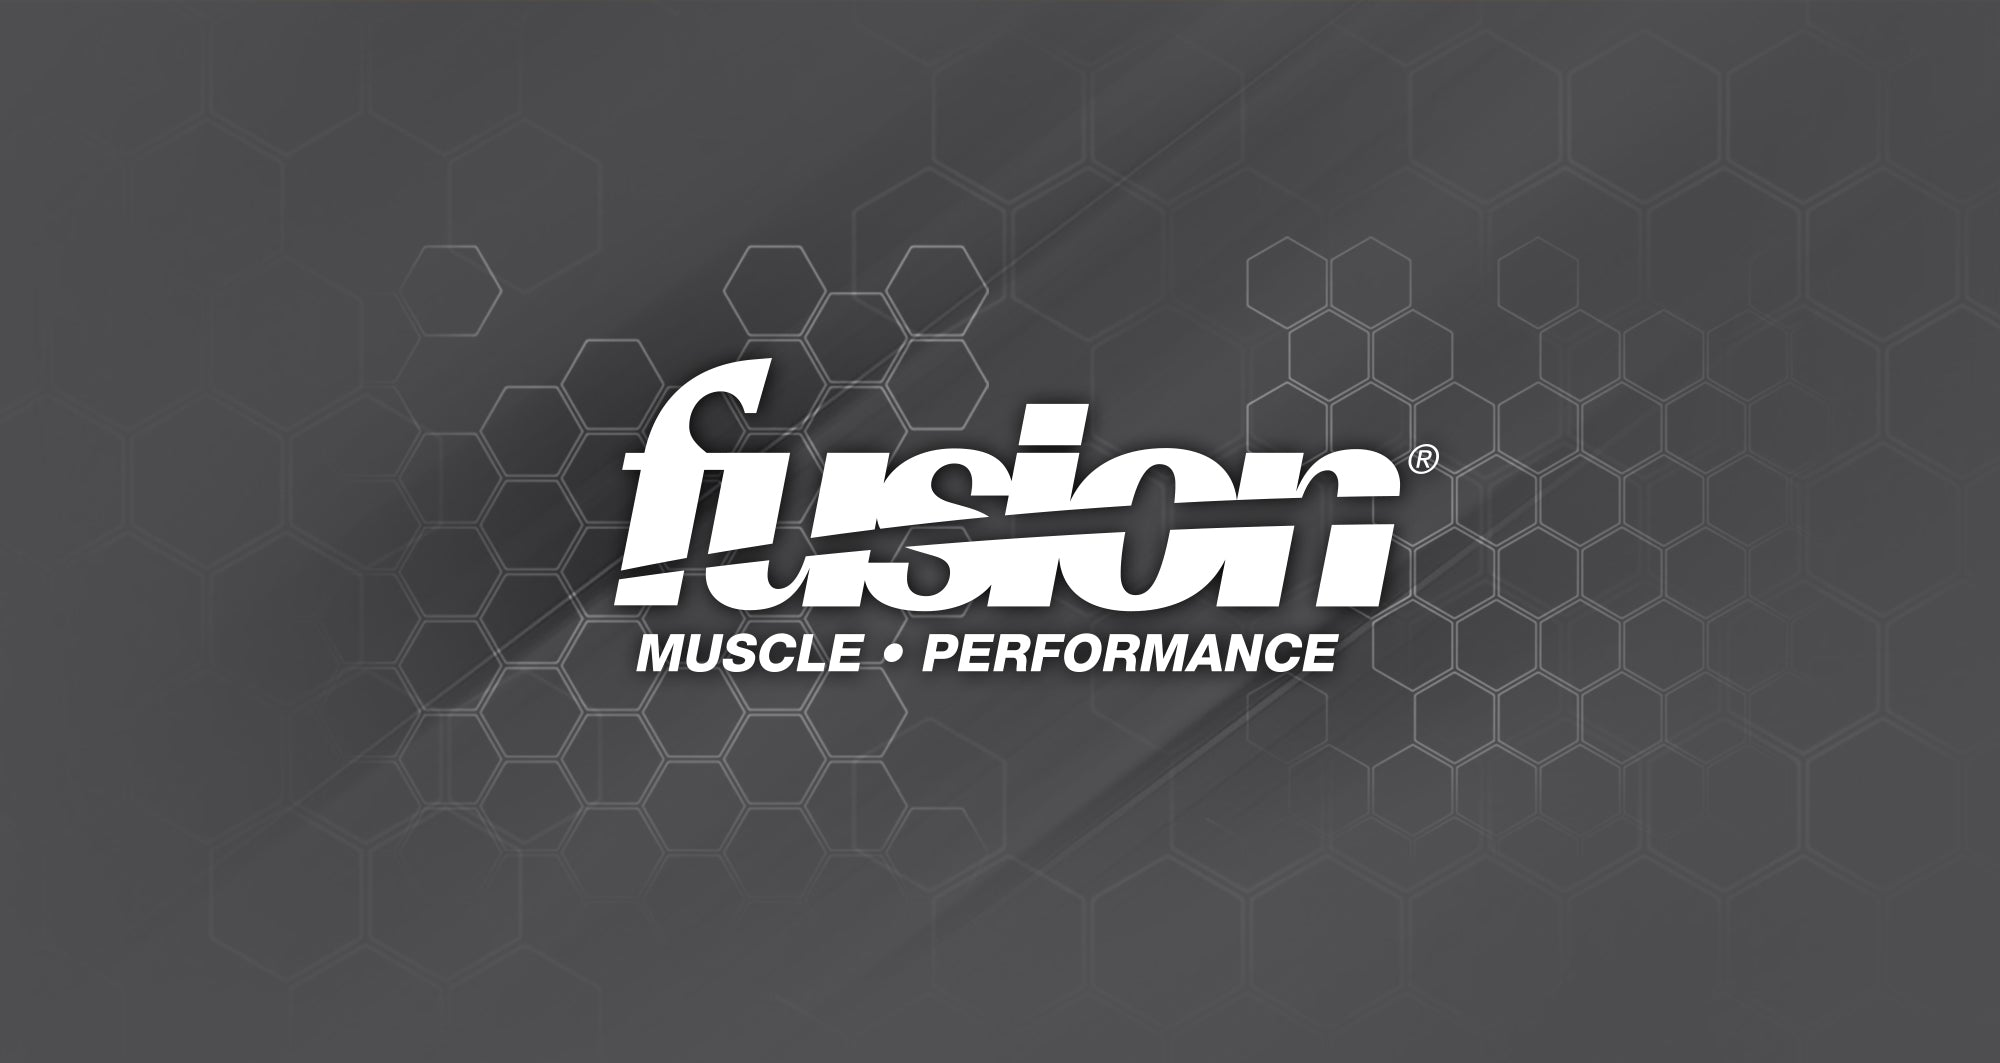 FUSION® | MUSCLE • PERFORMANCE